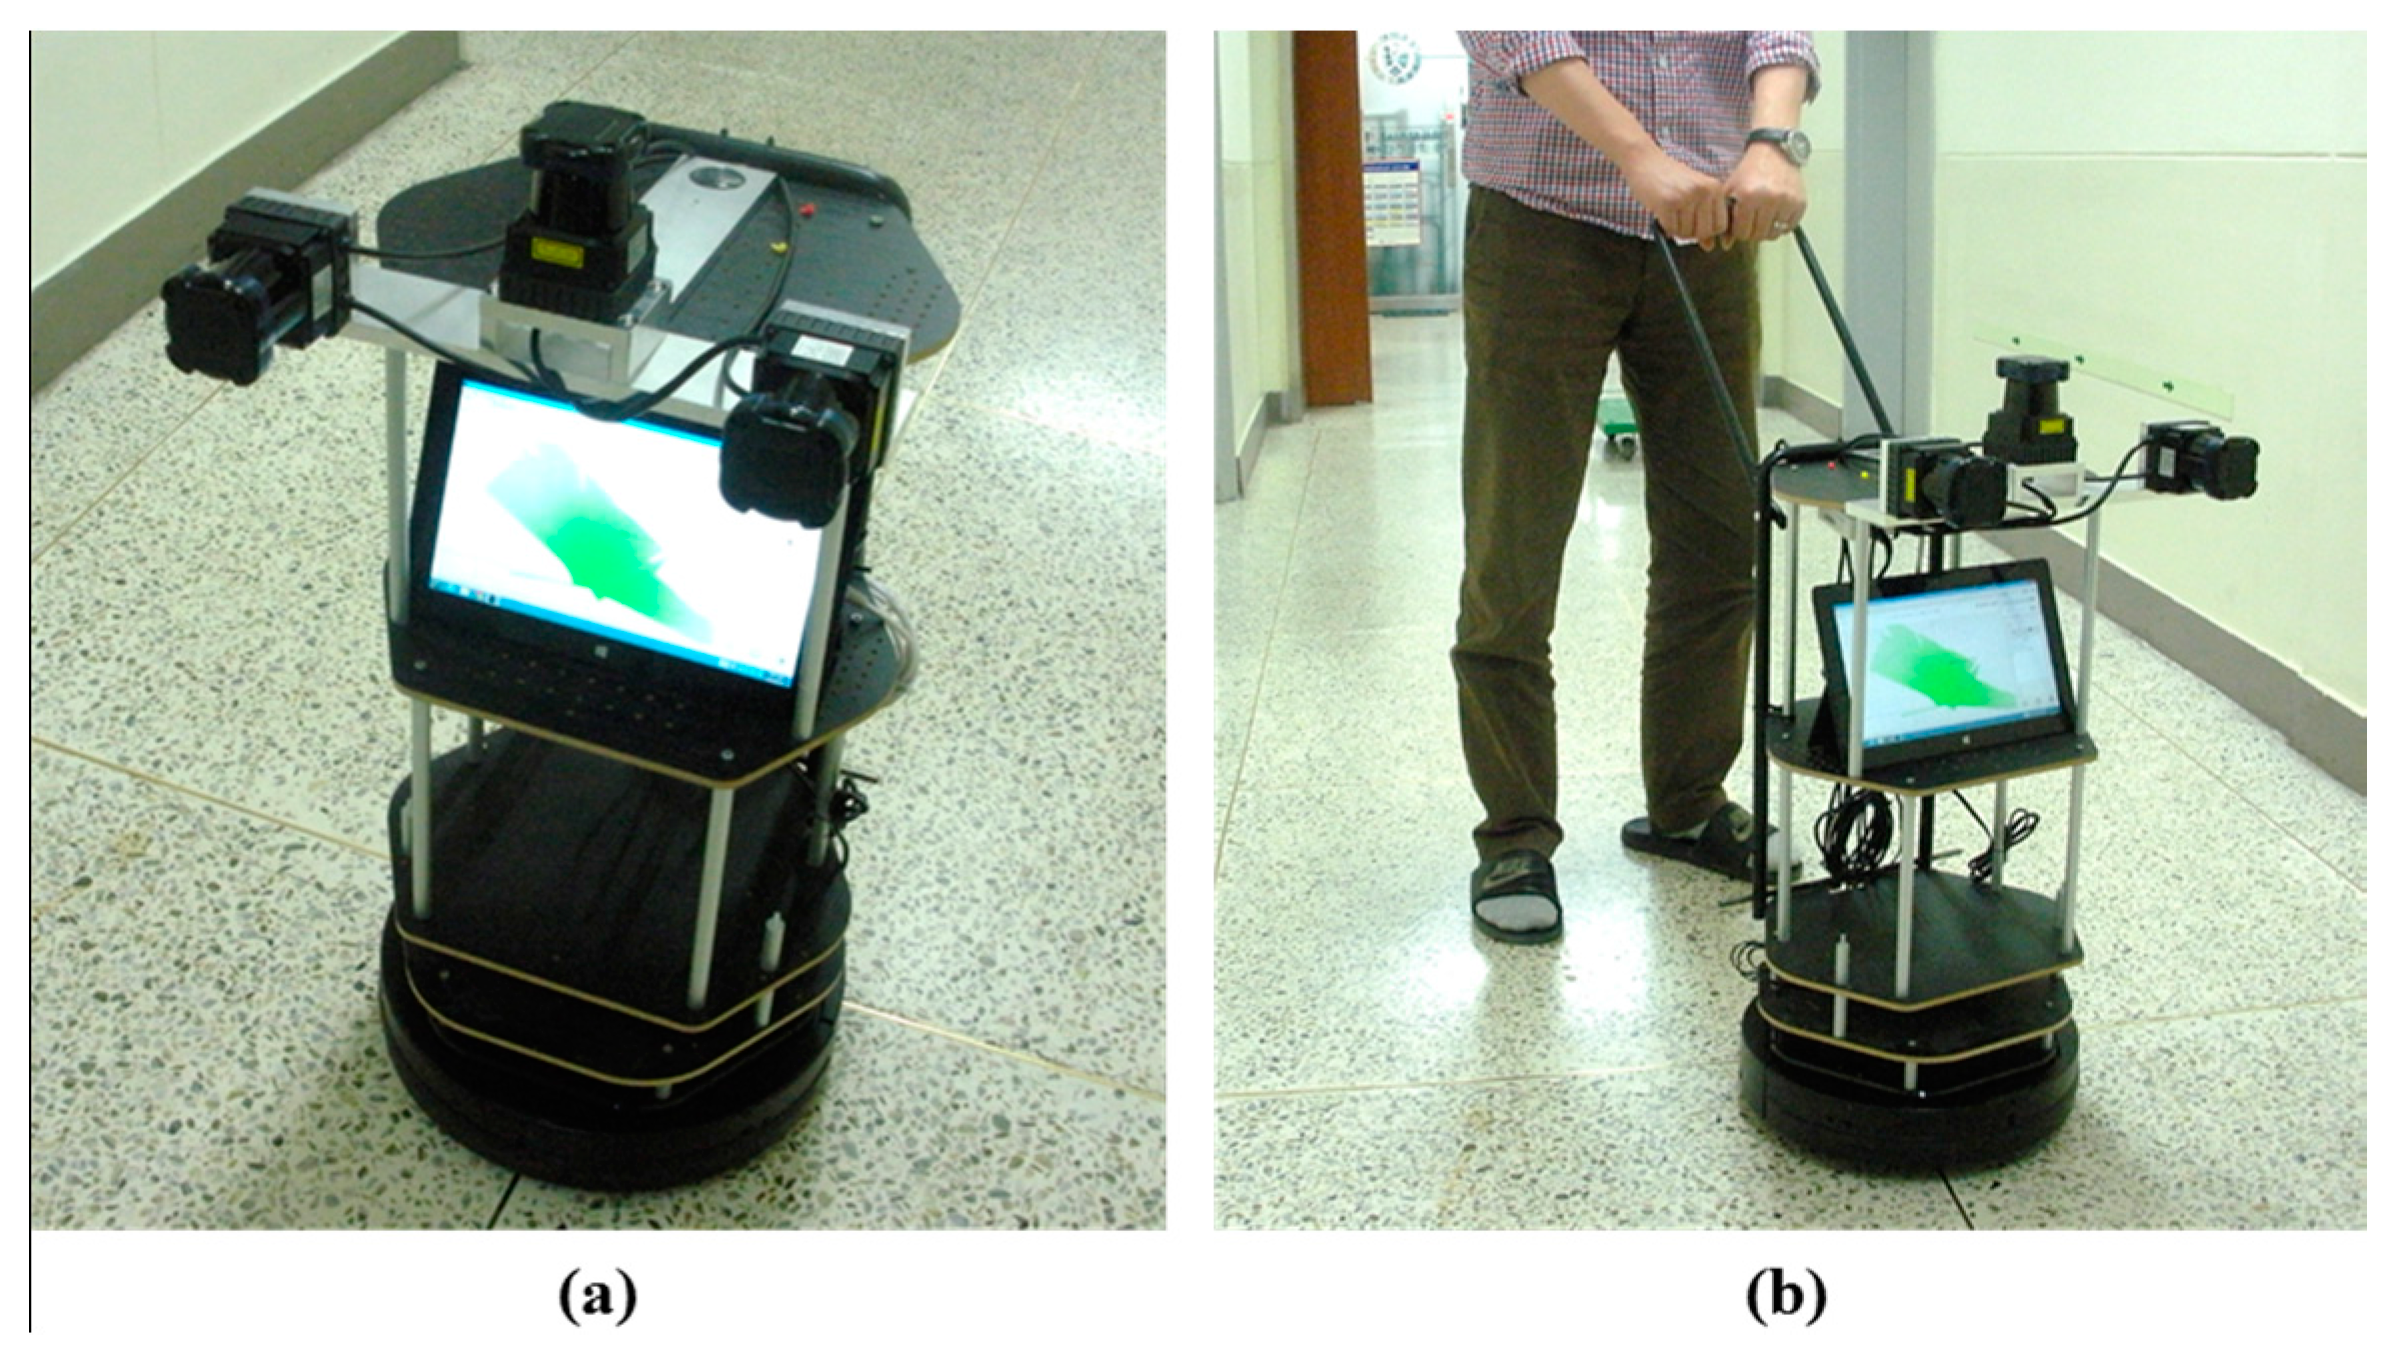 Sensors   Free Full-Text   Development of Kinematic 3D Laser Scanning  System for Indoor Mapping and As-Built BIM Using Constrained SLAM